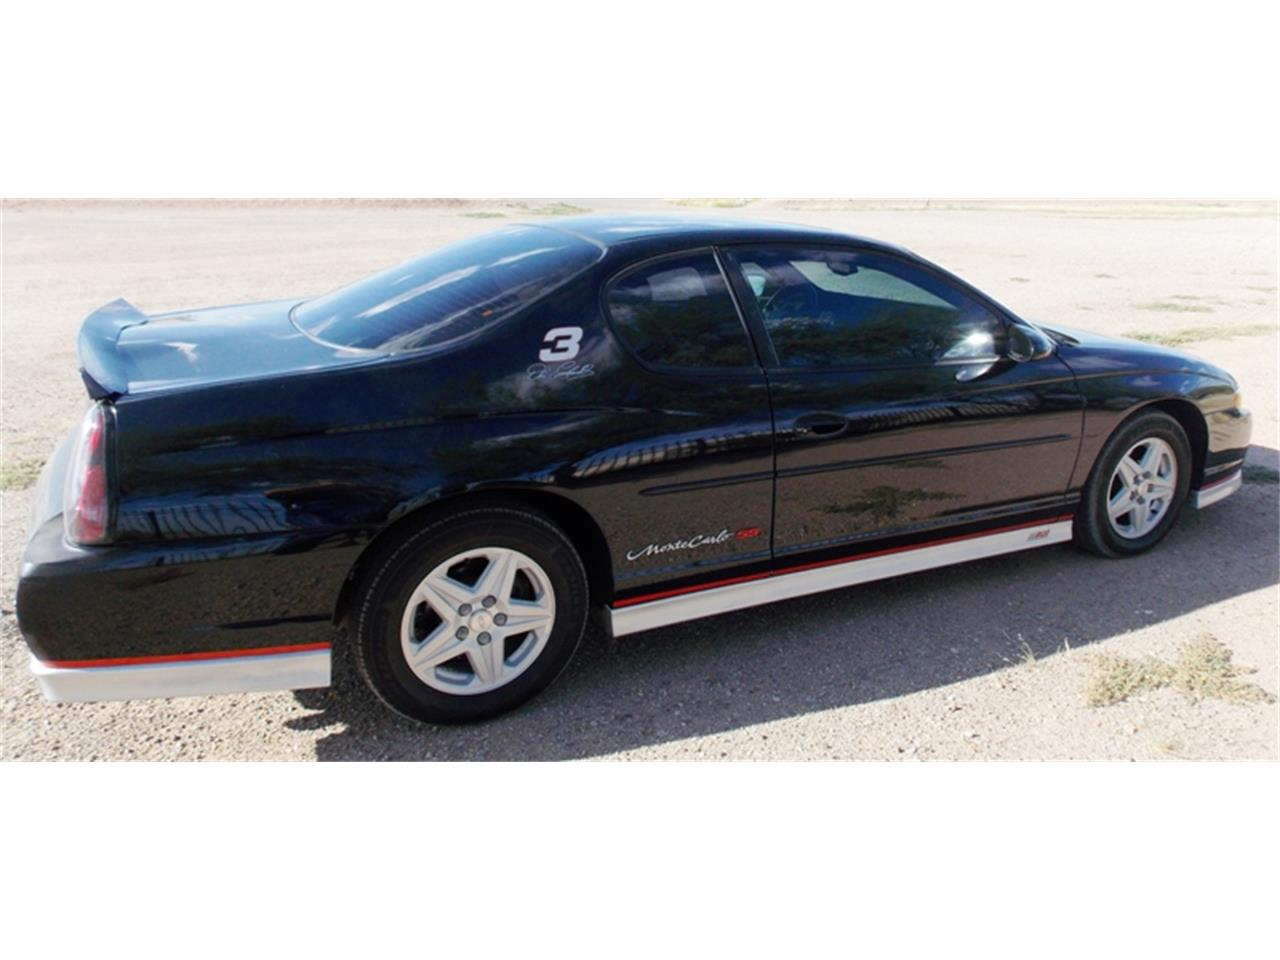 Large Picture of '02 Chevrolet Monte Carlo SS Intimidator located in AZ - Arizona - QWDS